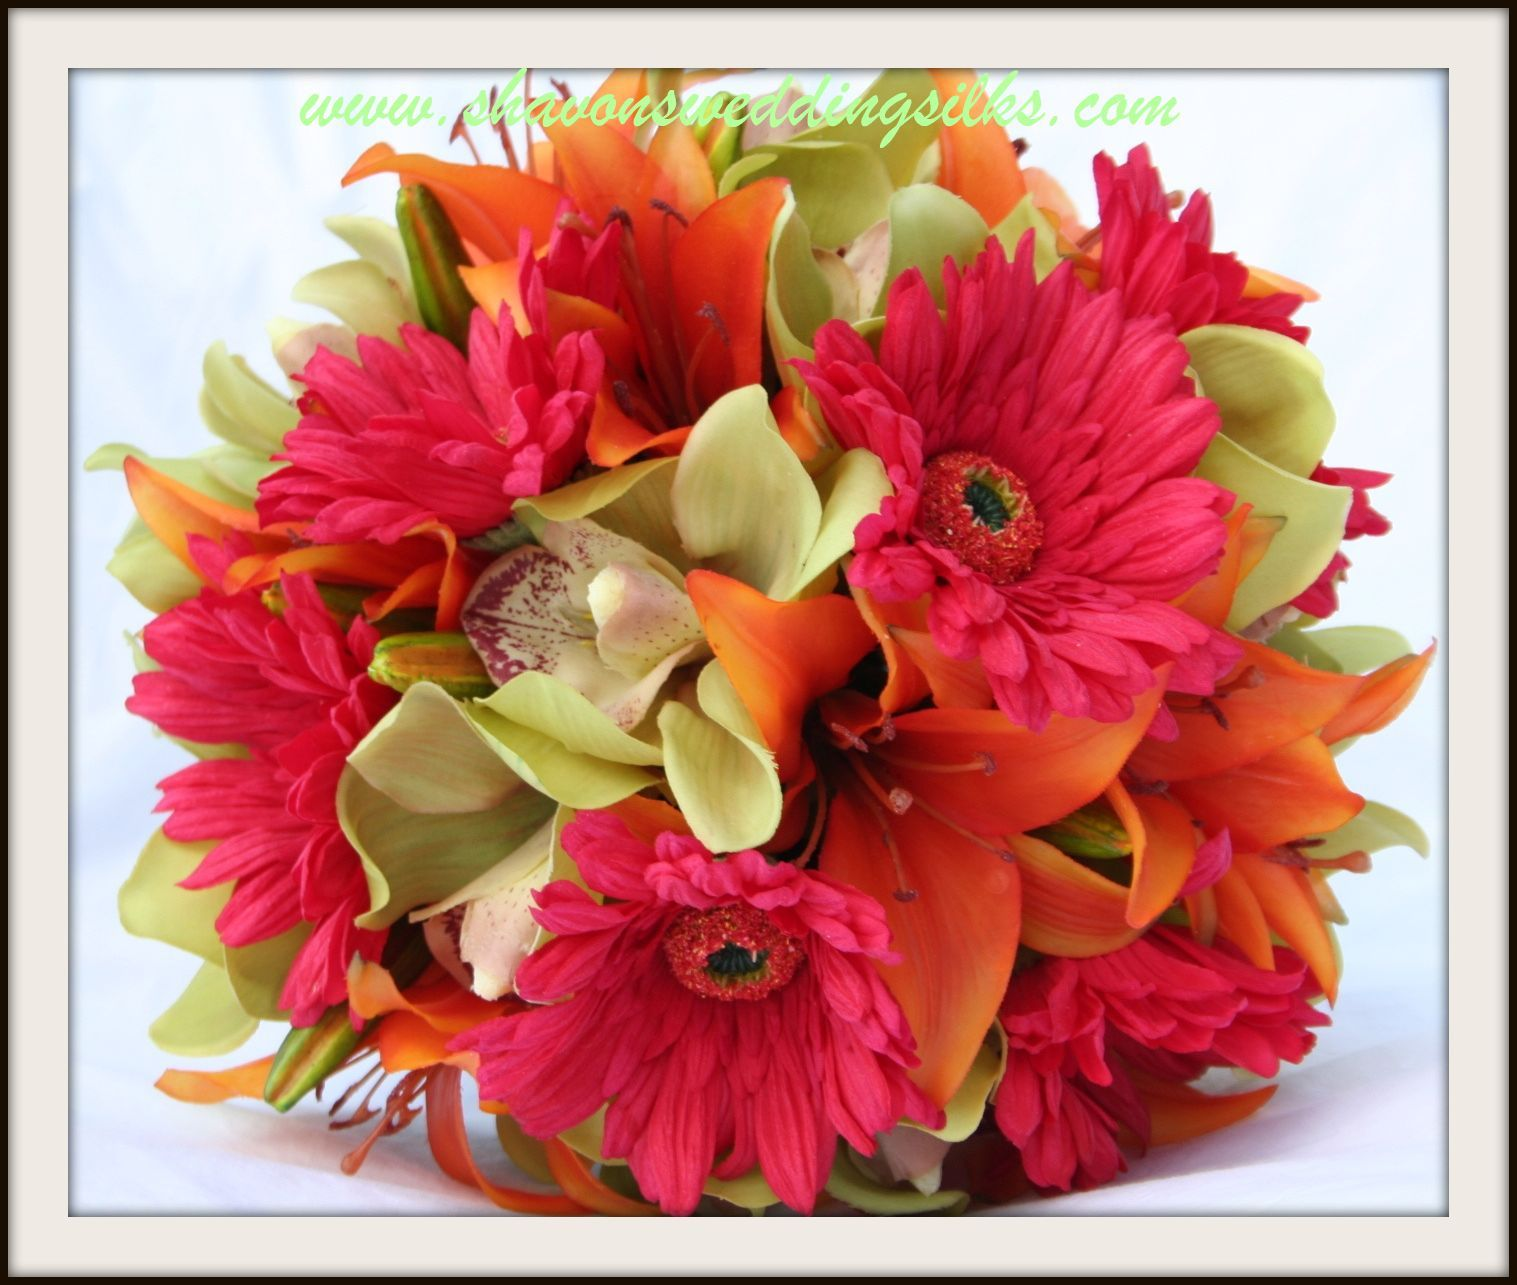 Flowers & Decor, orange, pink, green, Bride Bouquets, Flowers, Bouquet, Wedding, Lilies, Orchids, Dark, Daisies, Natural, Hot, Gerbera, Touch, Shavons wedding silks